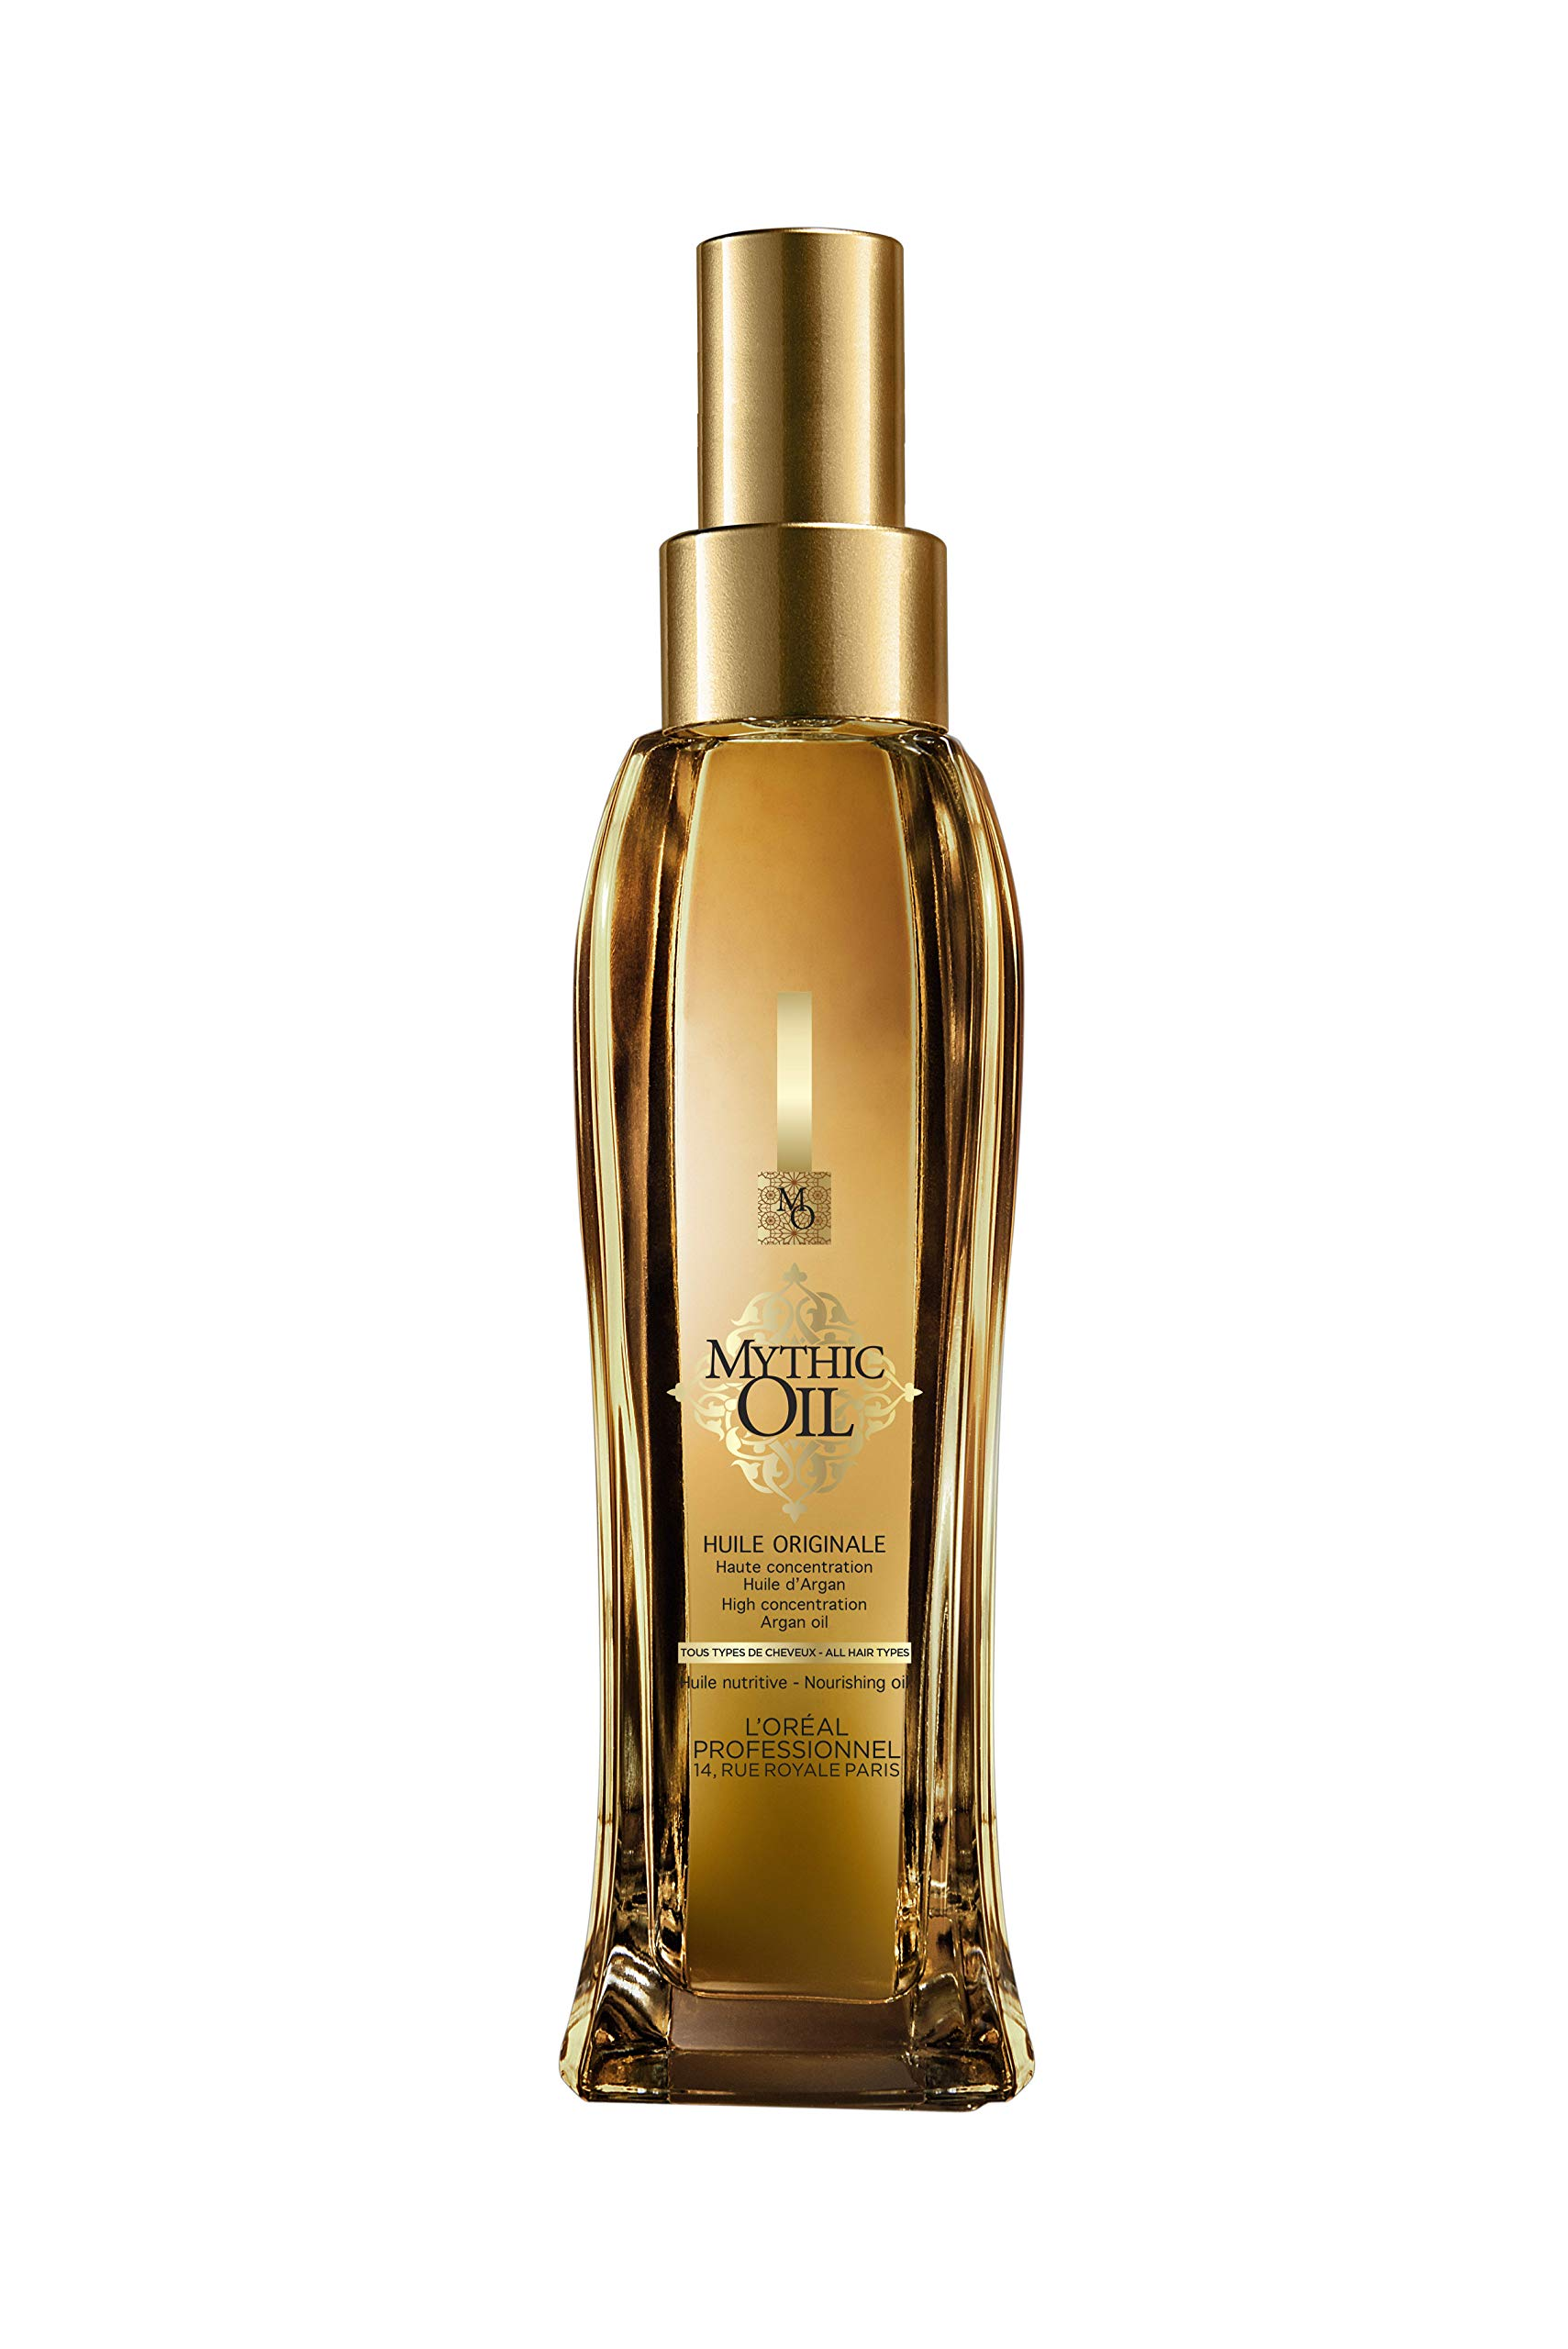 L'Oreal Paris, Professionnel Mythic Oil Nourishing Oil with Argan Oil All Hair Types 100mloz, 3.4 Fl Oz